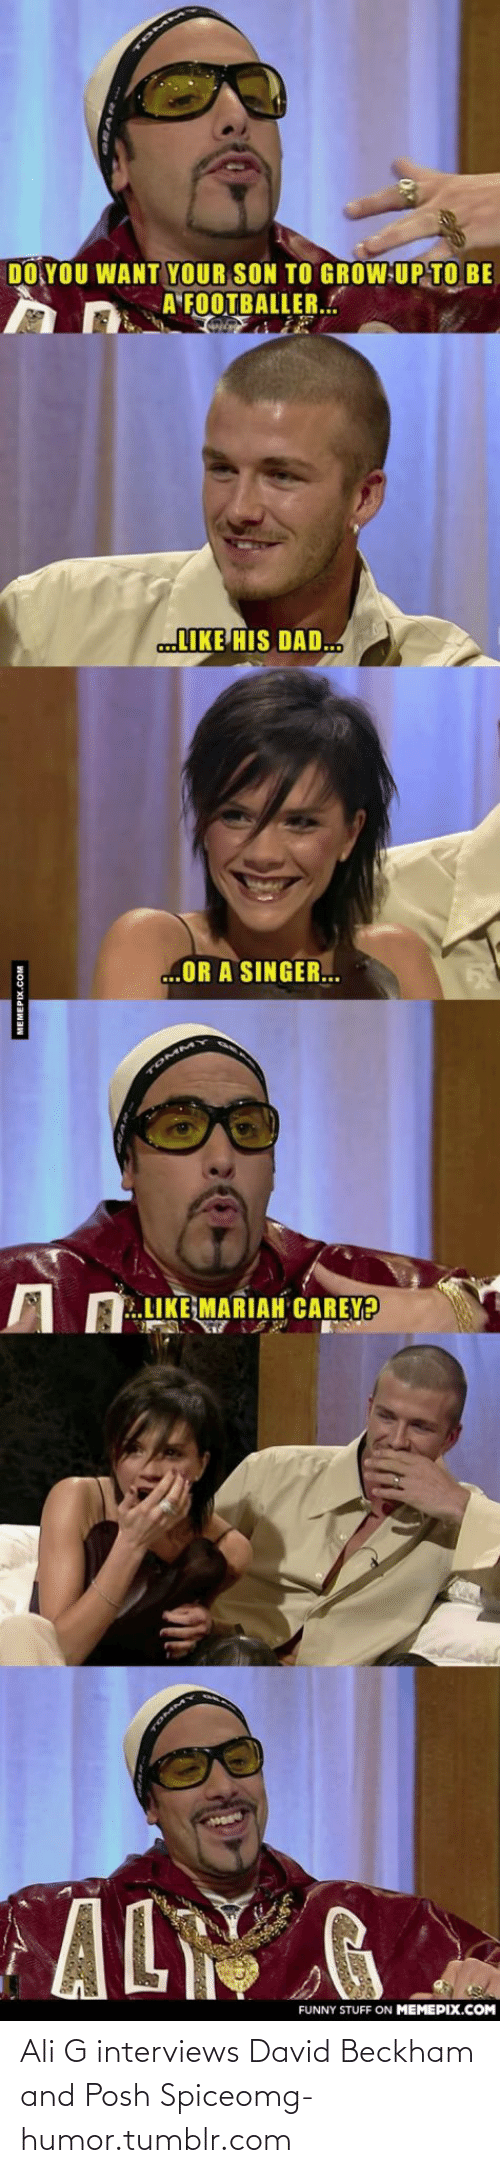 A Footballer: DO YOU WANT YOUR SON TO GROW UP TO BE  A FOOTBALLER..  LIKE HIS DAD.  ...OR A SINGER.  TOMMY  LIKE MARIAH CAREY?  AL  FUNNY STUFF ON MEMEPIX.COM  MEMEPIX.COM Ali G interviews David Beckham and Posh Spiceomg-humor.tumblr.com